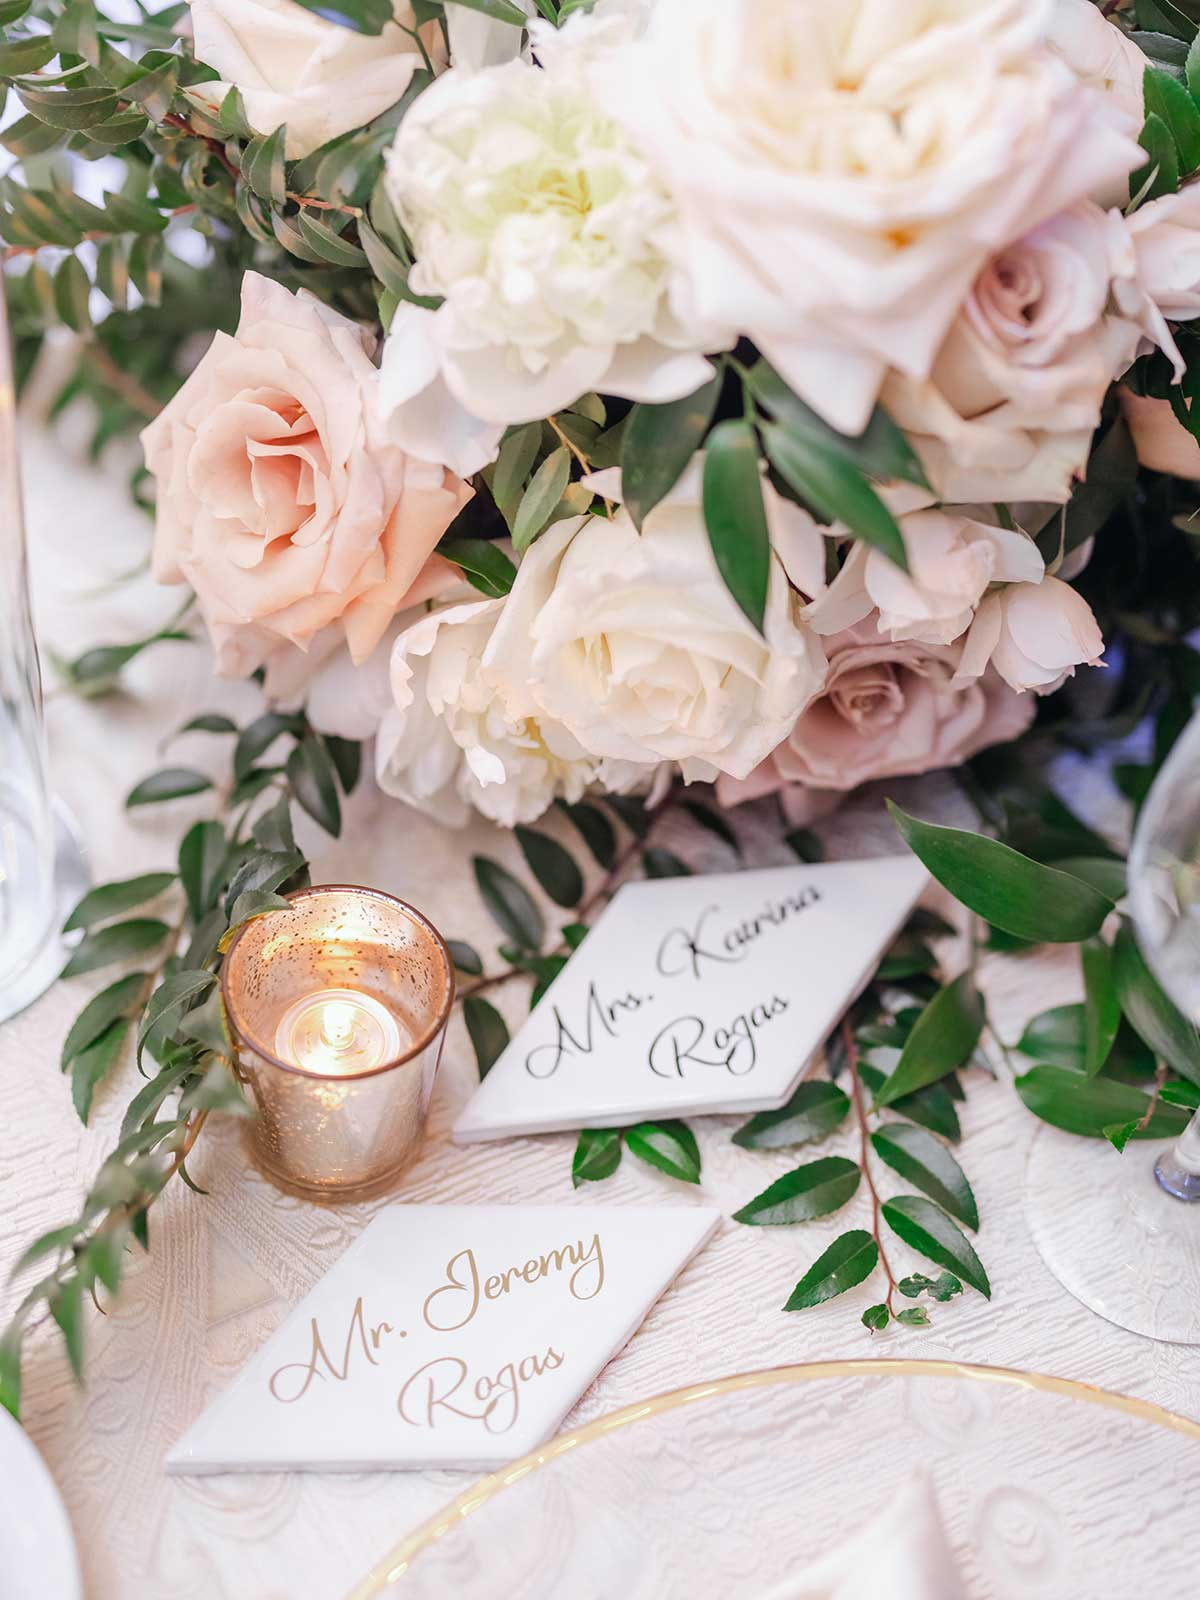 Bride and groom place cards on head table with flowers and candles.